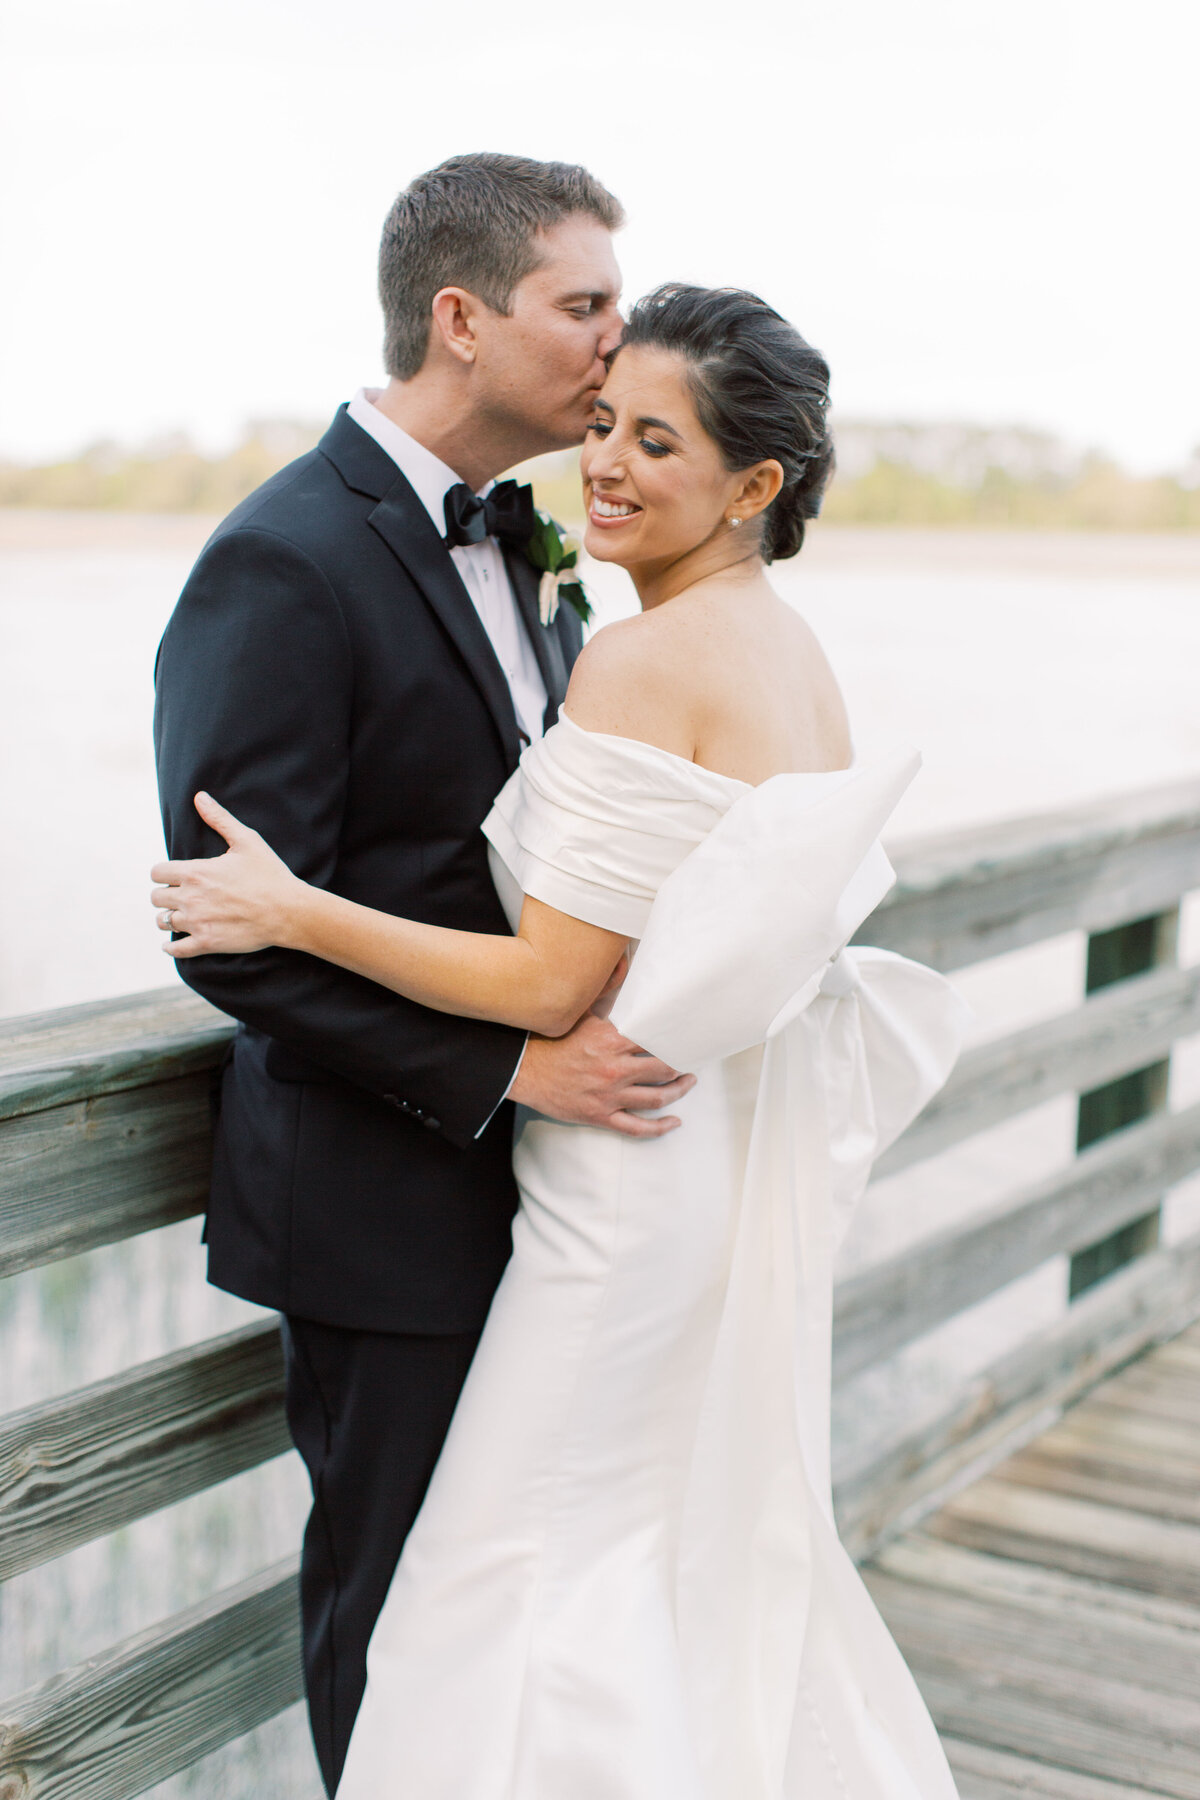 Powell_Oldfield_River_Club_Bluffton_South_Carolina_Beaufort_Savannah_Wedding_Jacksonville_Florida_Devon_Donnahoo_Photography_0753